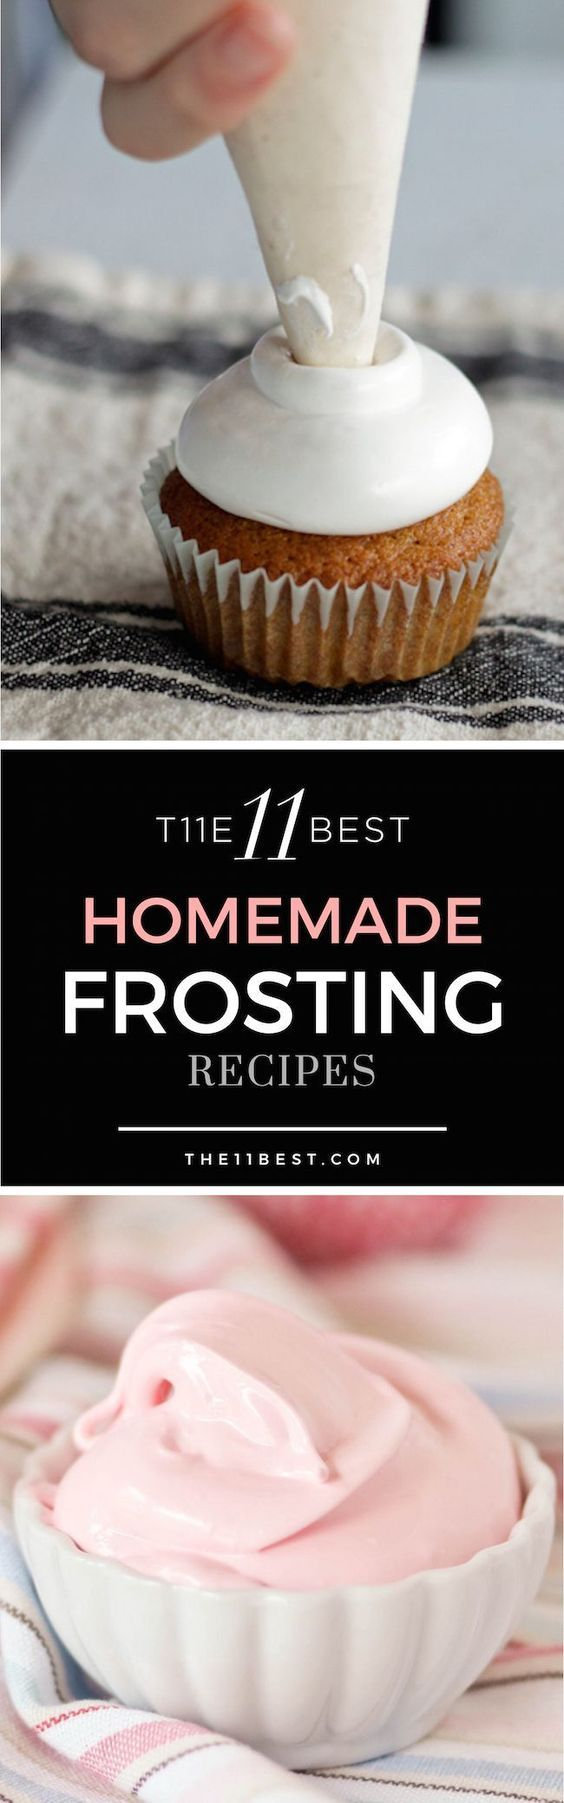 The 11 Best Homemade Frosting Recipes | Learn how to make the best buttercream frosting and more! These recipes for frosting are perfect for cakes and cupcakes!